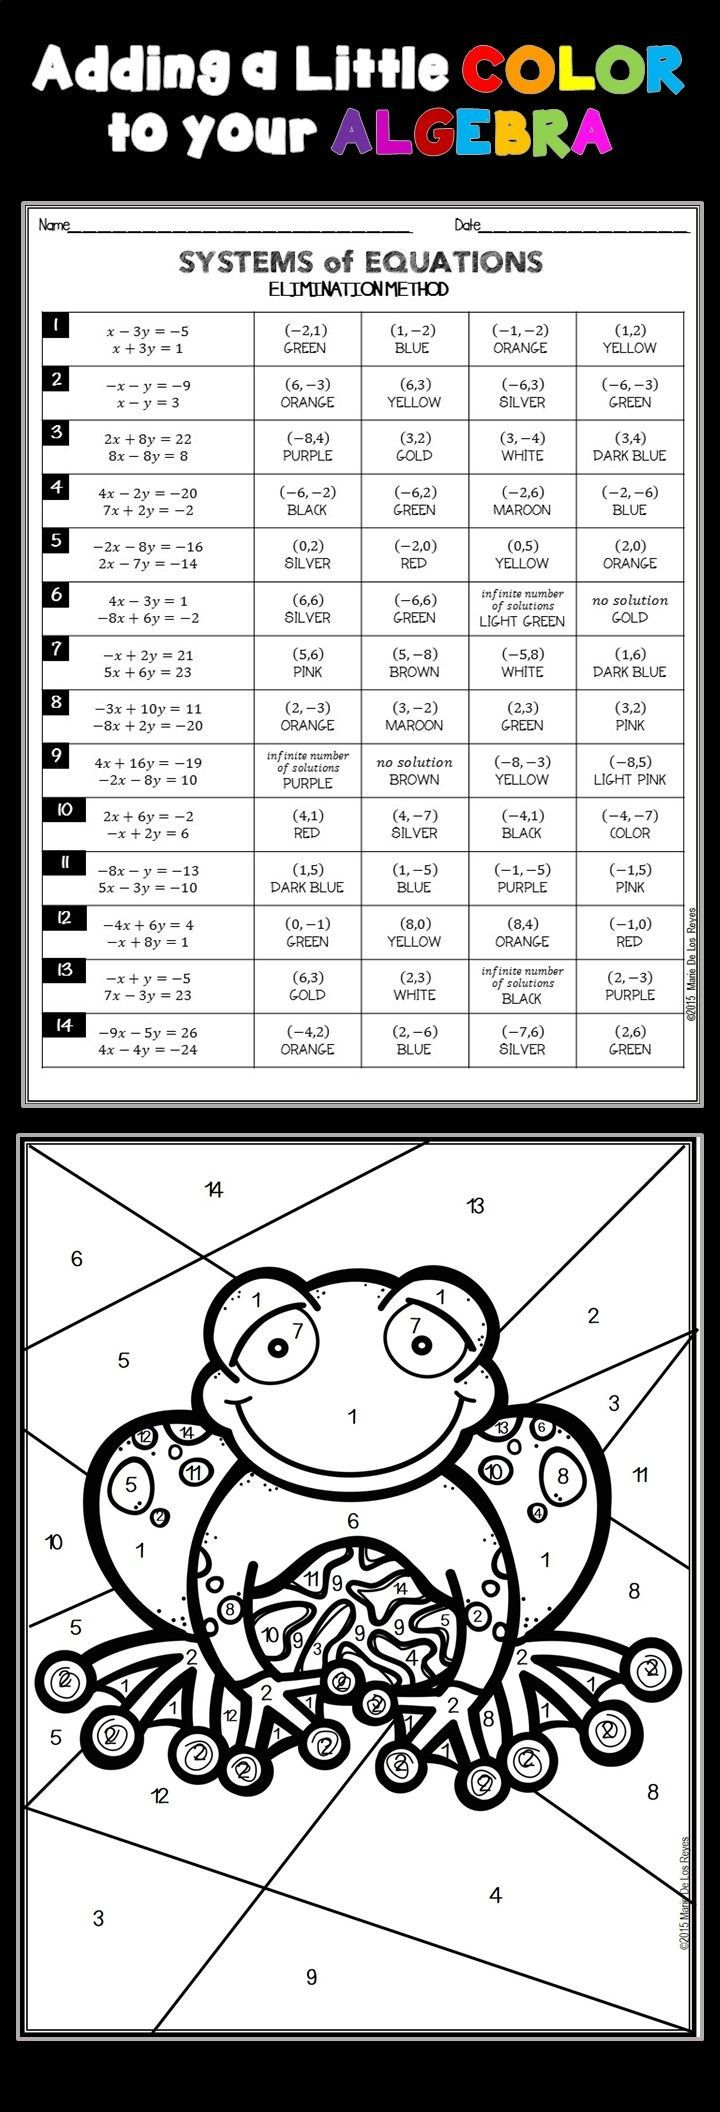 worksheet Elimination Method Worksheet solving systems of equations using the elimination method coloring activity